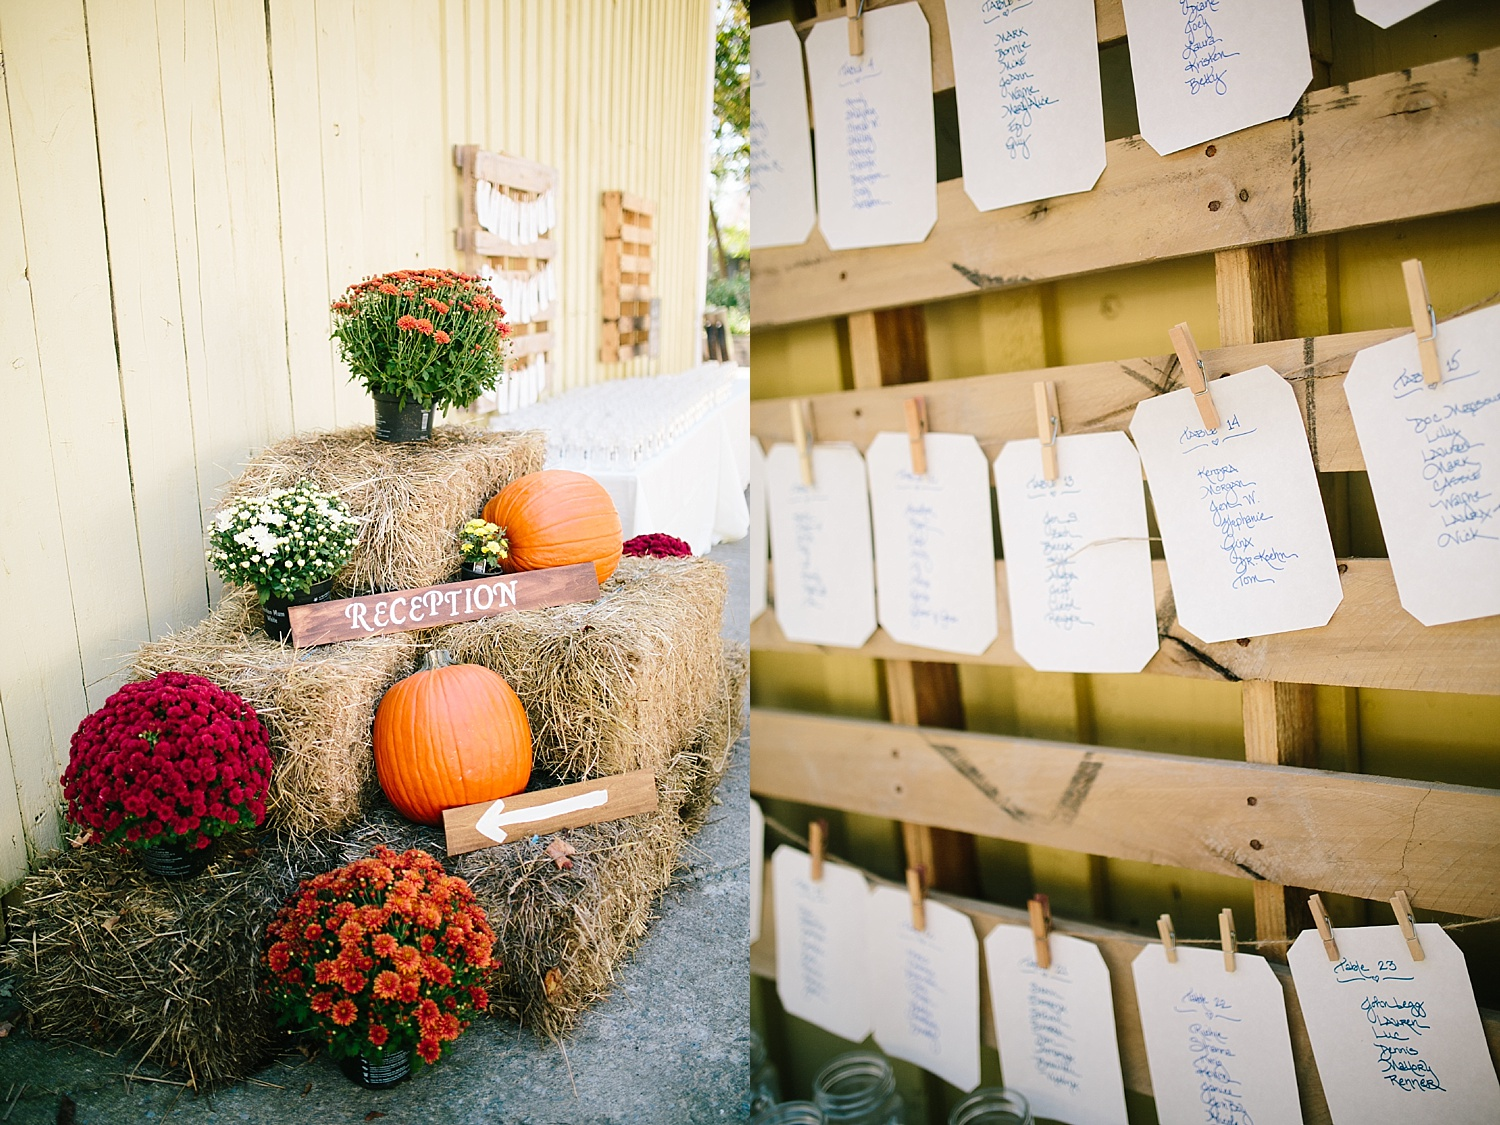 jennyryan_newbeginnings_farmstead_upstatenewyork_wedding_image111.jpg